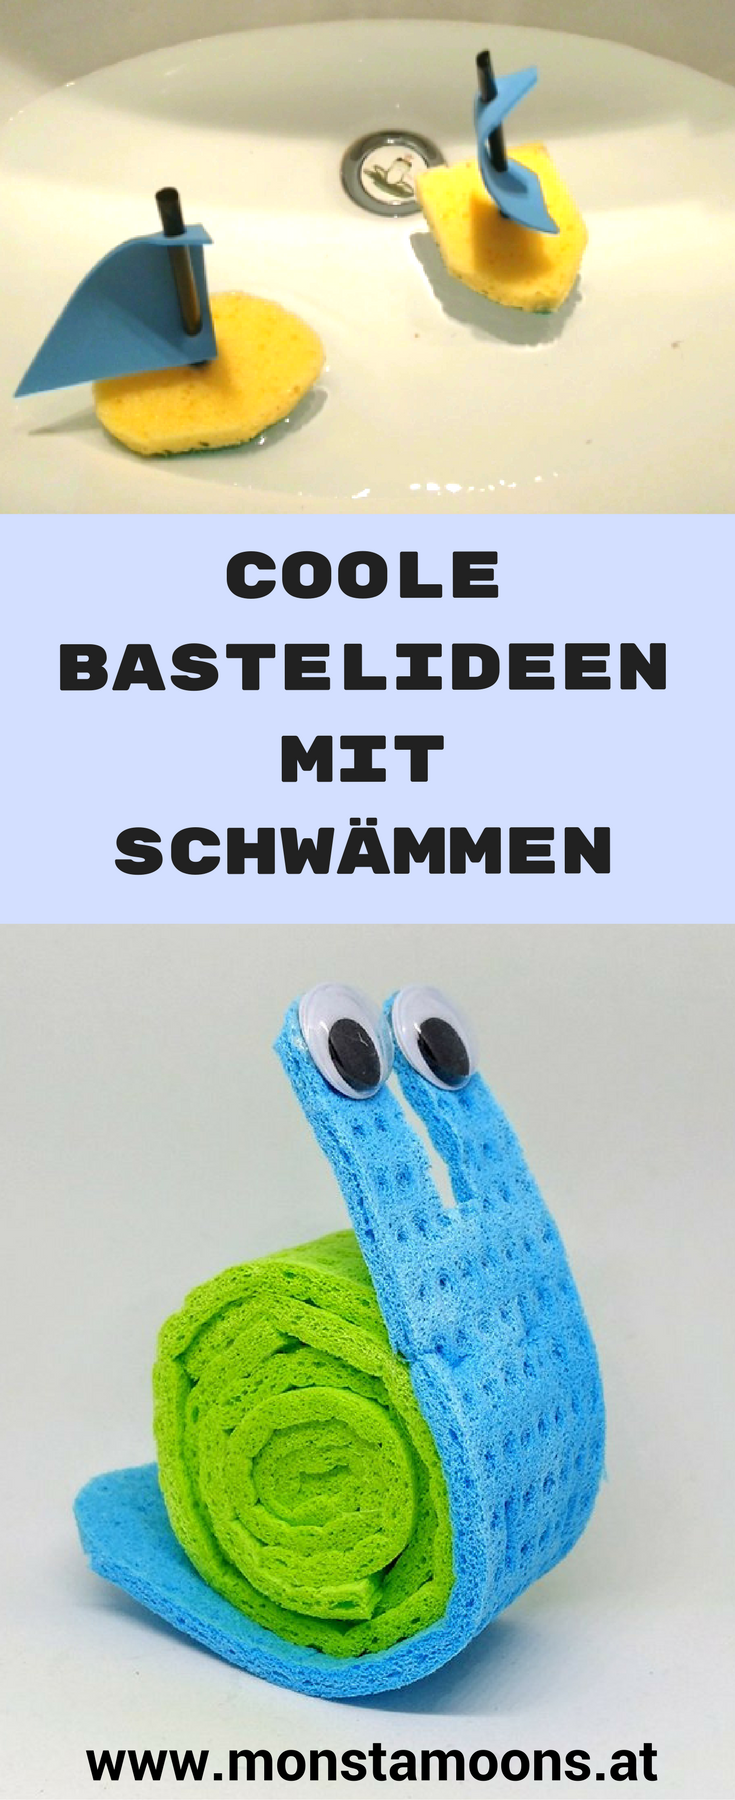 Basteln Sommer Coole Bastelideen Mit Schwämmen Stuff Crafts For Kids Diy For